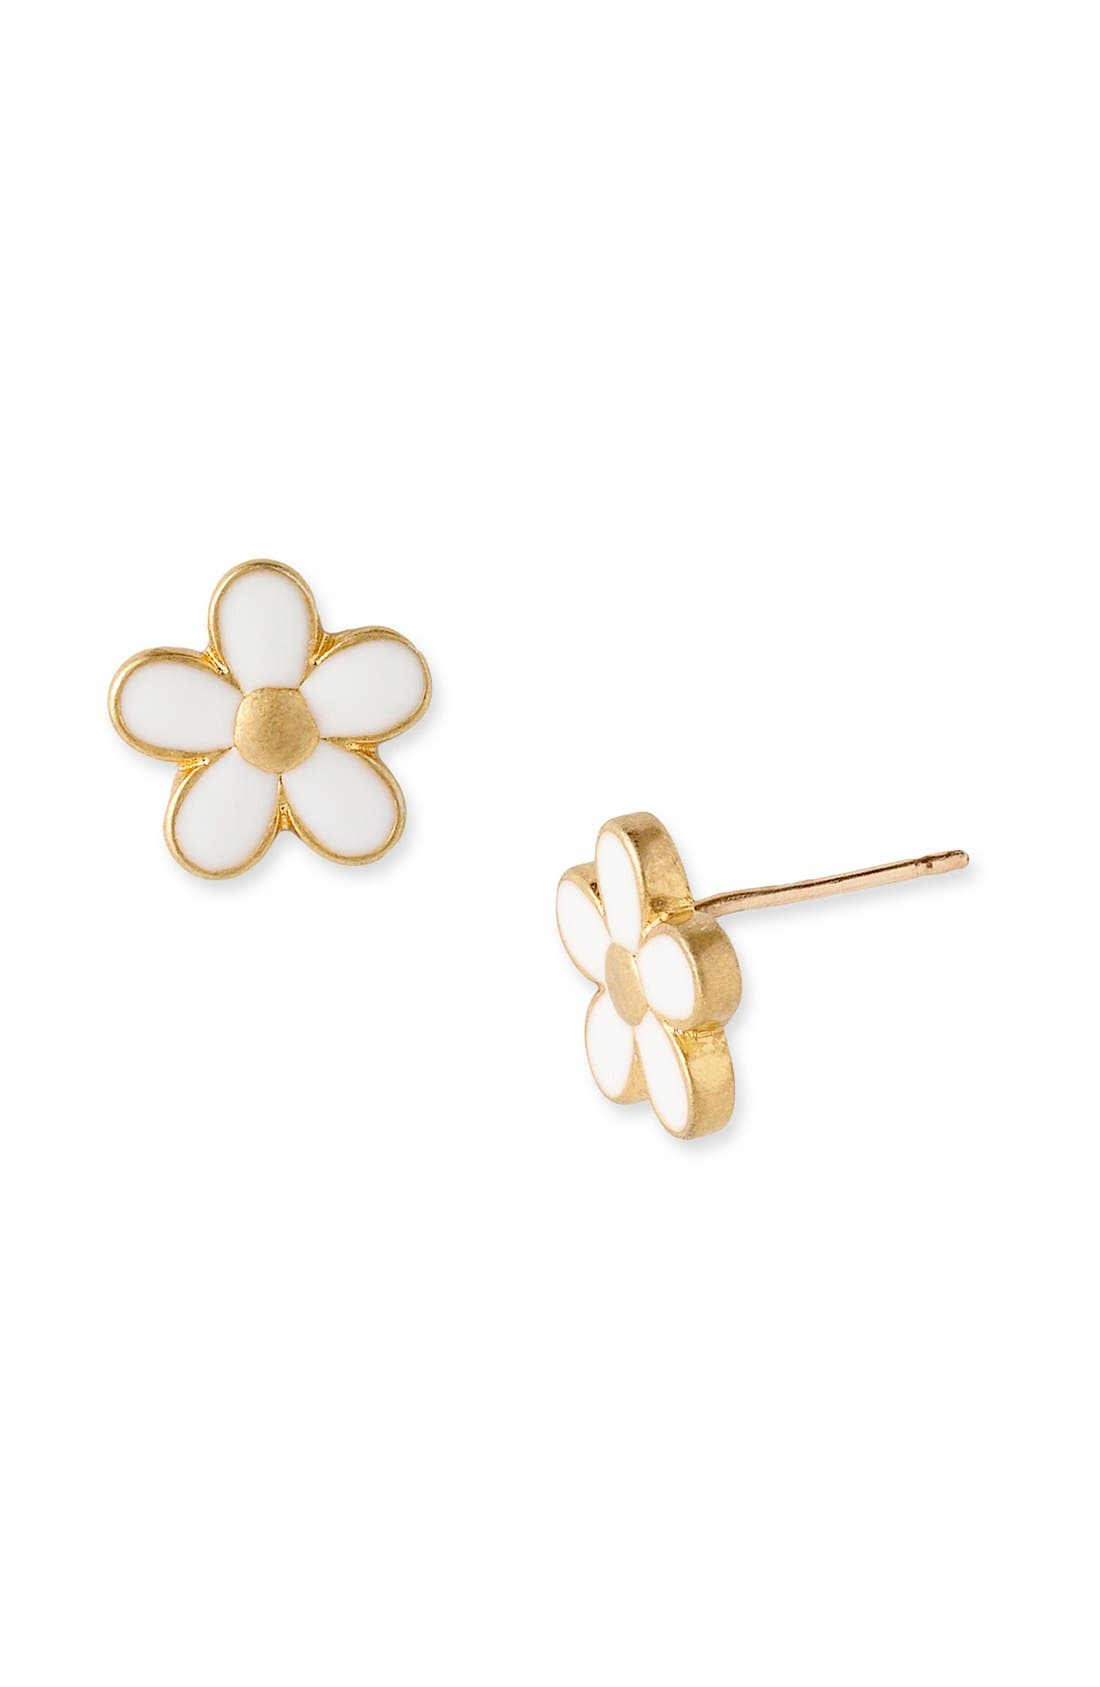 Alternate Image 1 Selected - MARC BY MARC JACOBS 'Daisy Chain' Small Stud Earrings